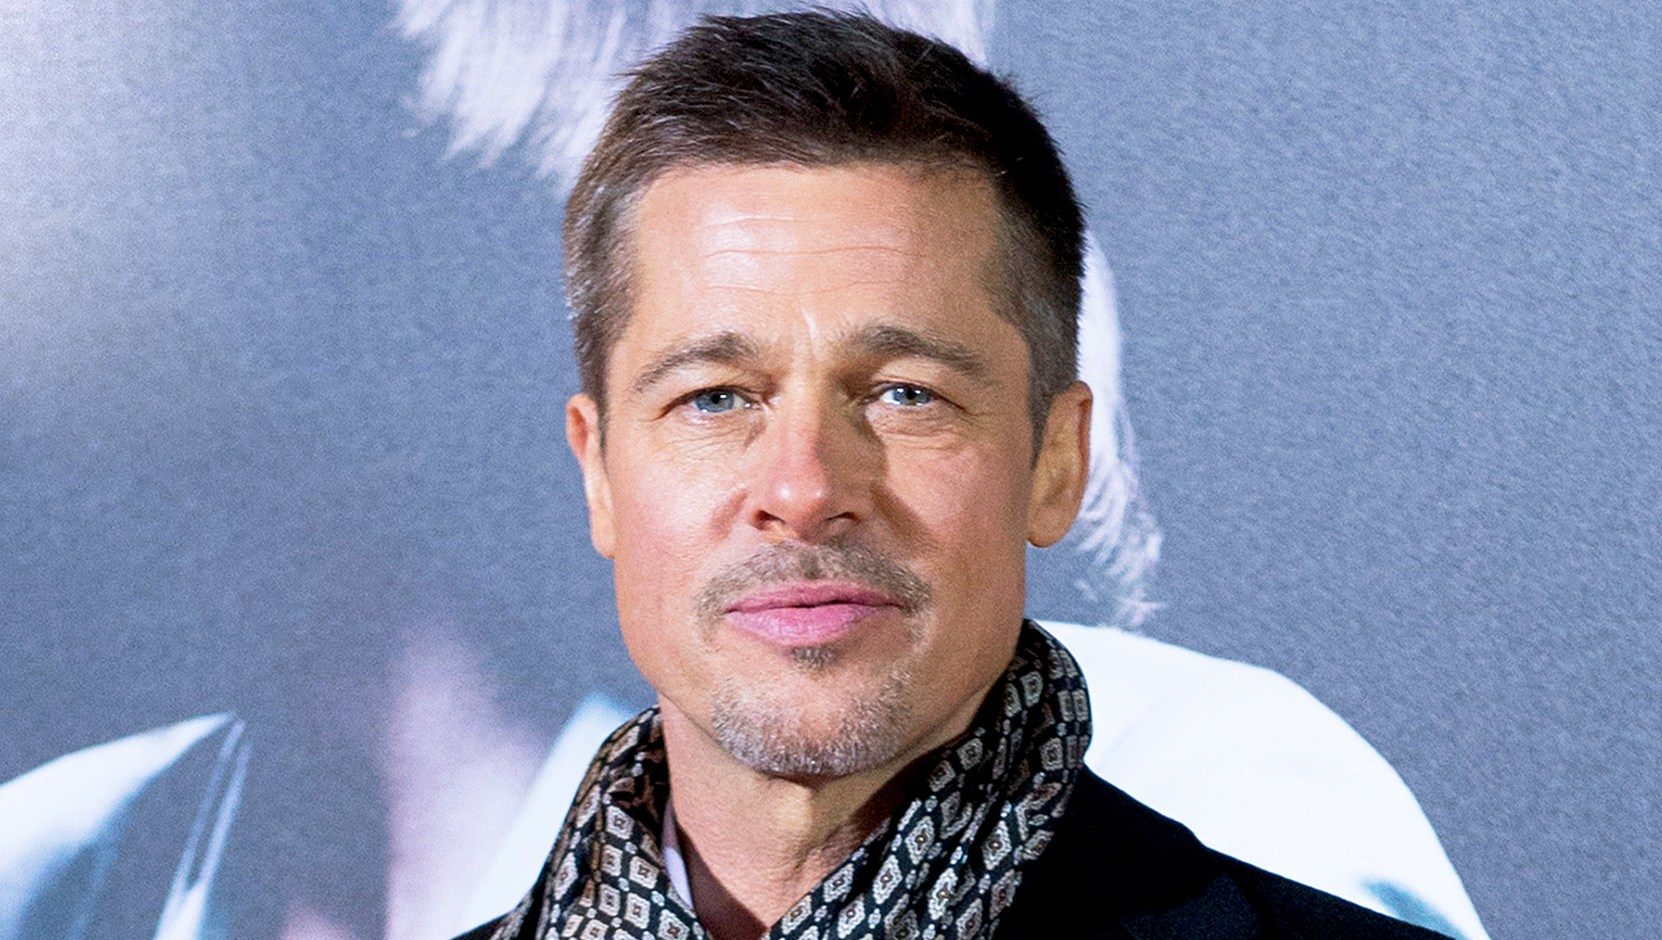 Brad Pitt attends the Madrid 2016 premiere of the Paramount Pictures title 'Allied' at Callao City Lights in Madrid, Spain.